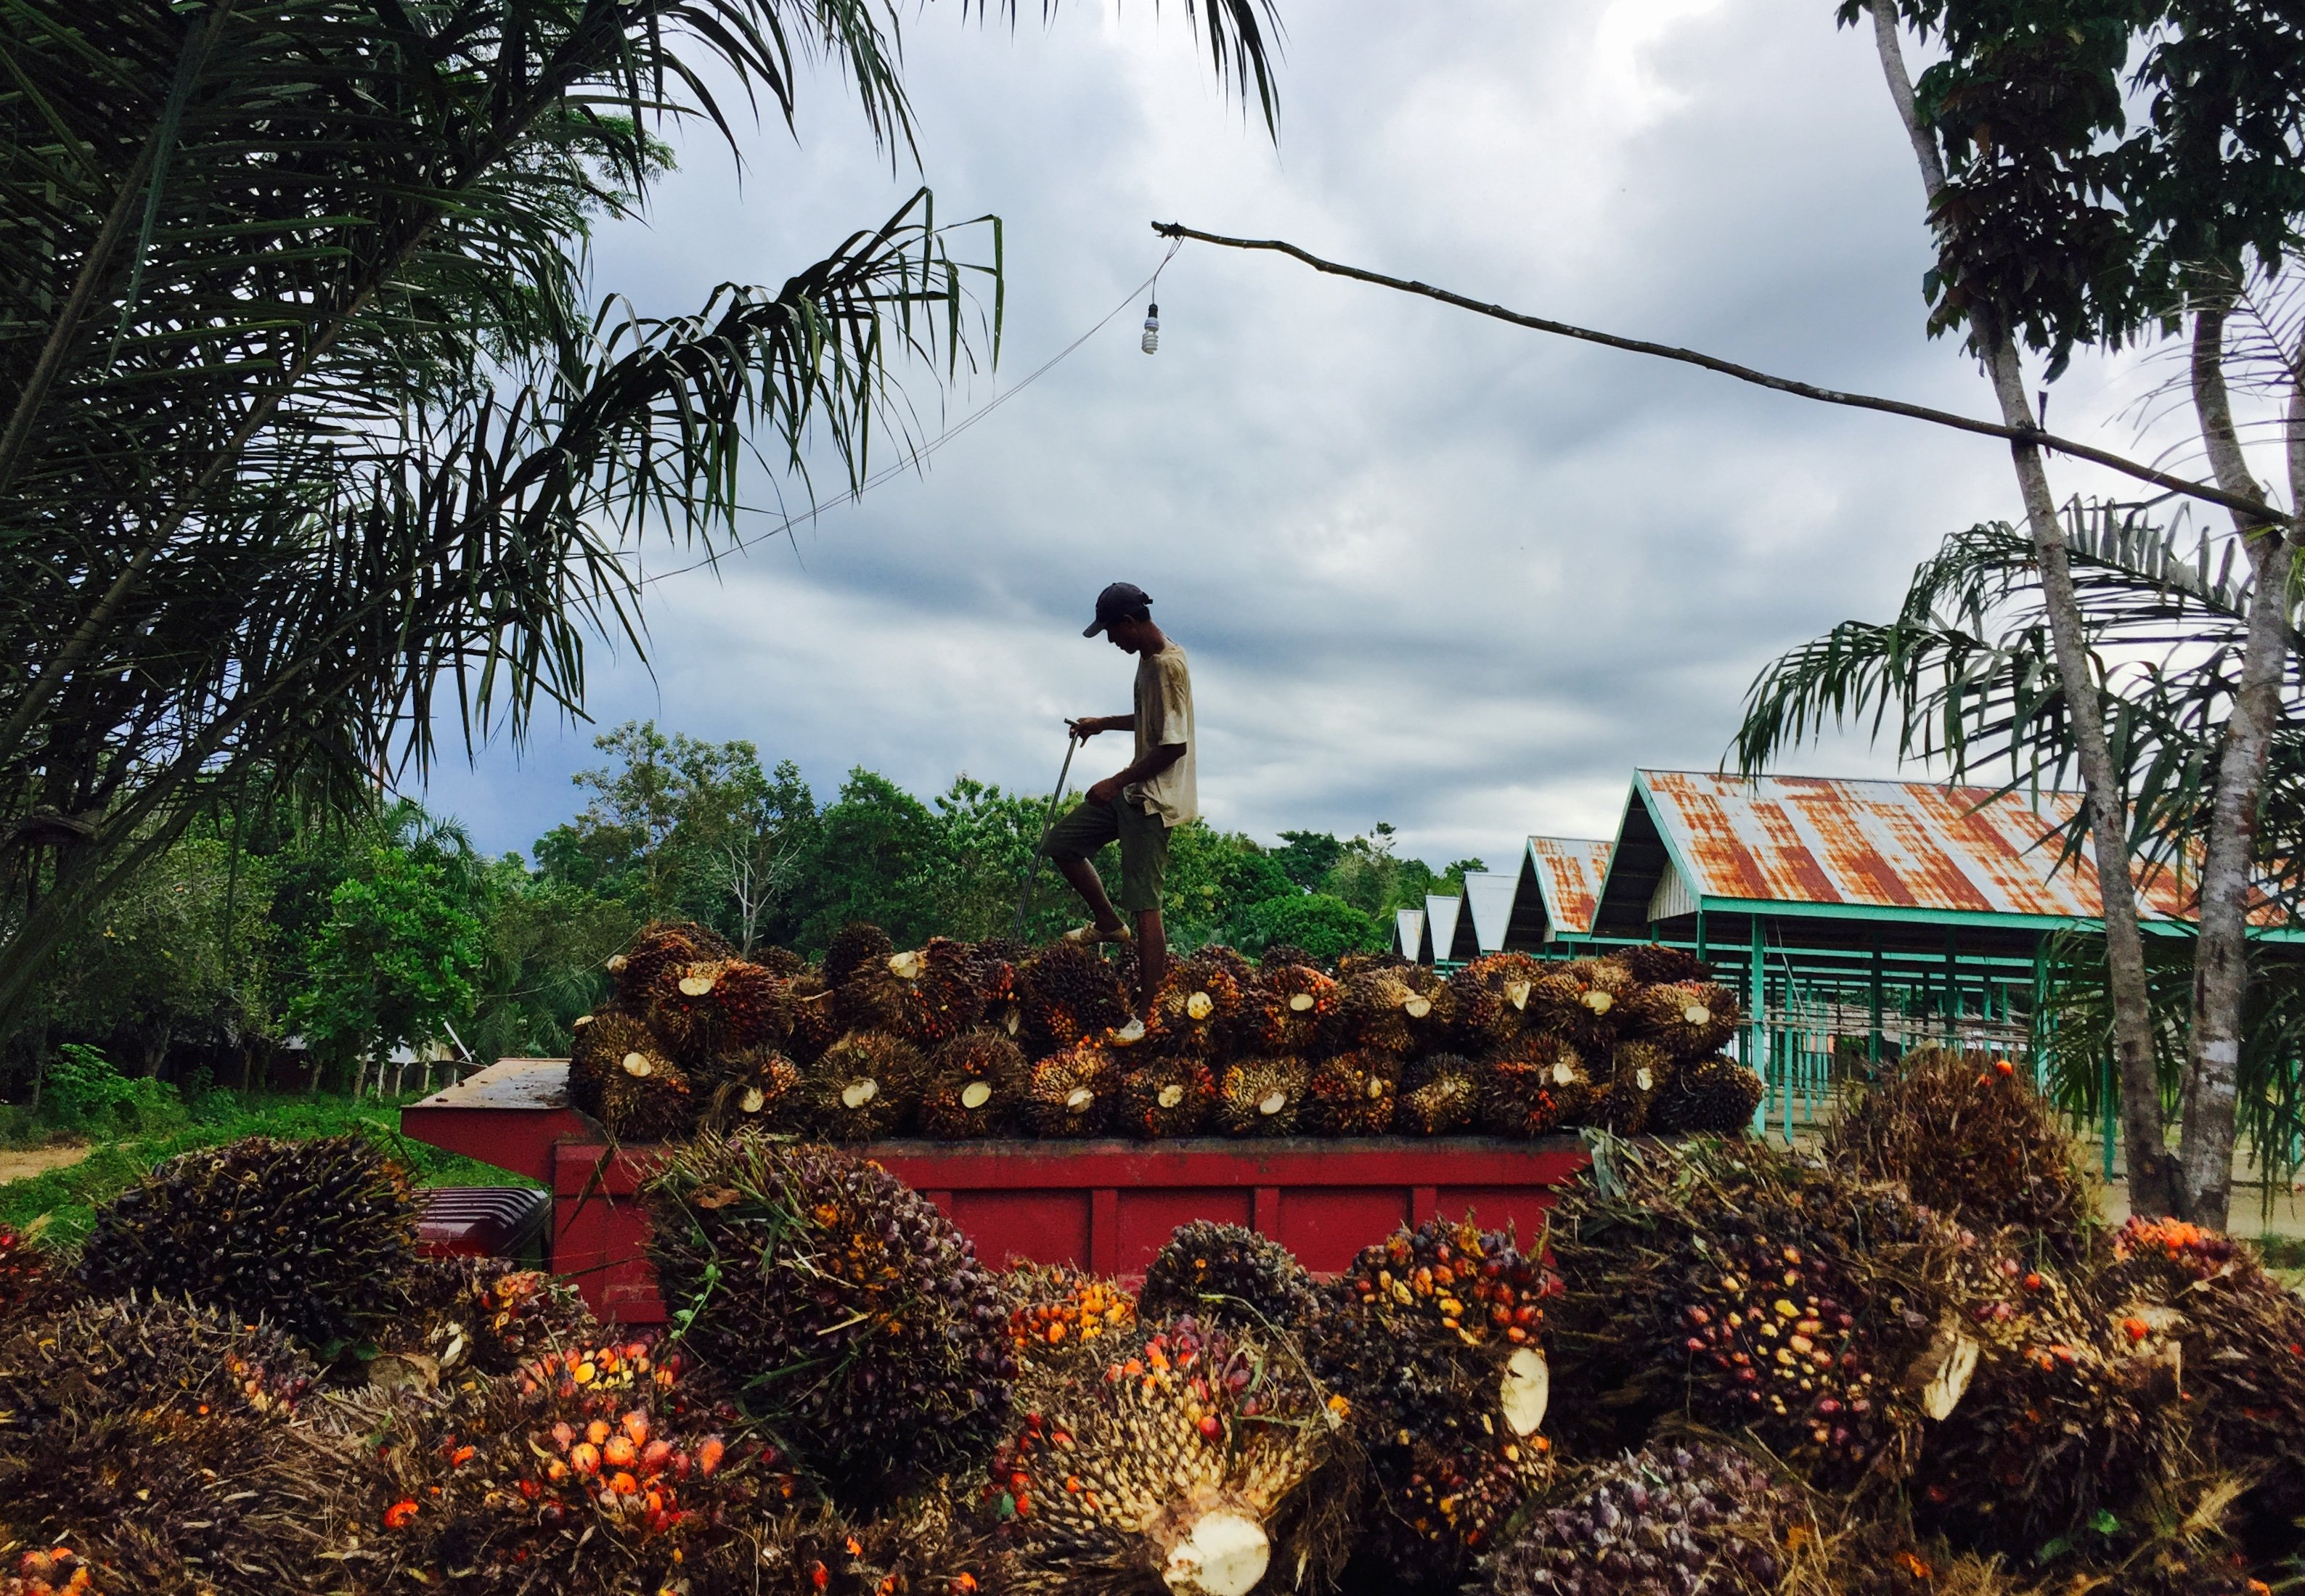 A worker in East Kalimantan, Indonesia, loads palm fruit for transport to a factory that will process it into palm oil (Image credit: Joann de Zegher)